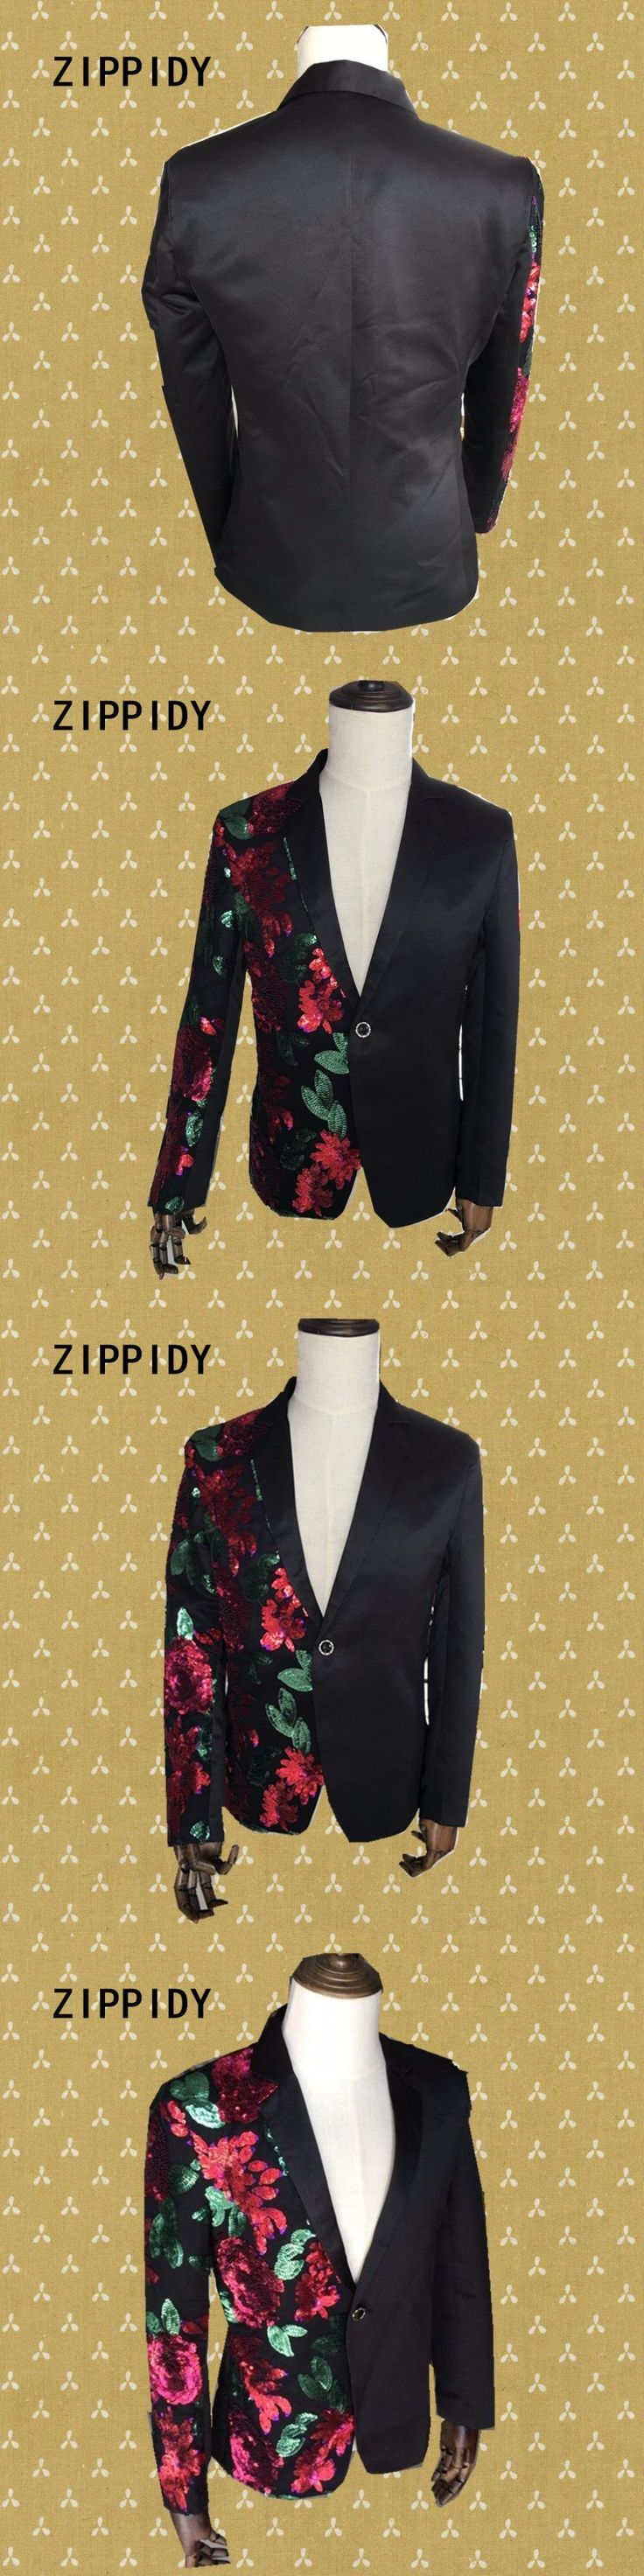 Red Green Sequins Flowers Men's Suit Jacket Wedding Nightclub Male Singer Sparkly Blazer Costumes Ds Dj Performance Party Wear